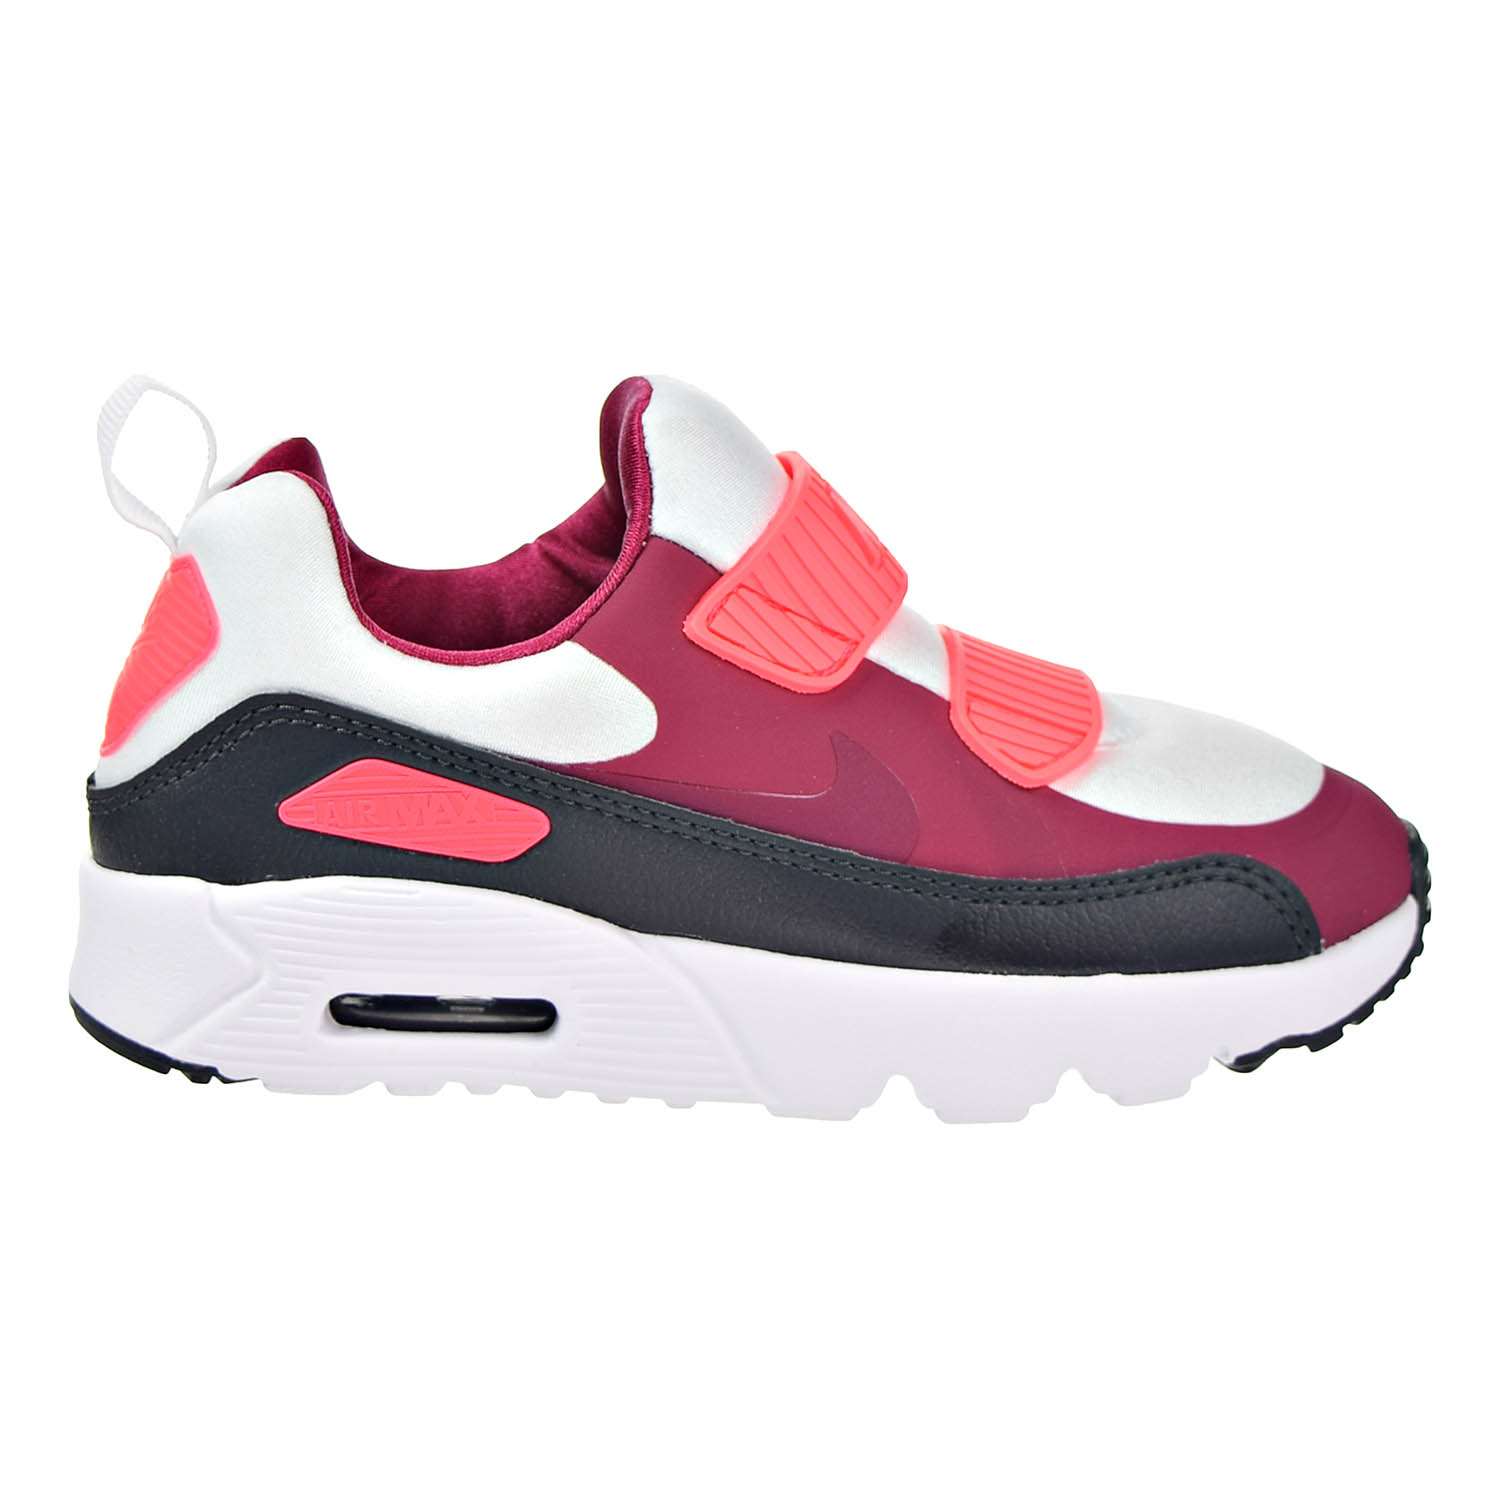 Nike - Nike Air Max Tiny 90 (PS) Preschool Shoes White/Noble Red/Anthracite 881927-101 - Walmart.com